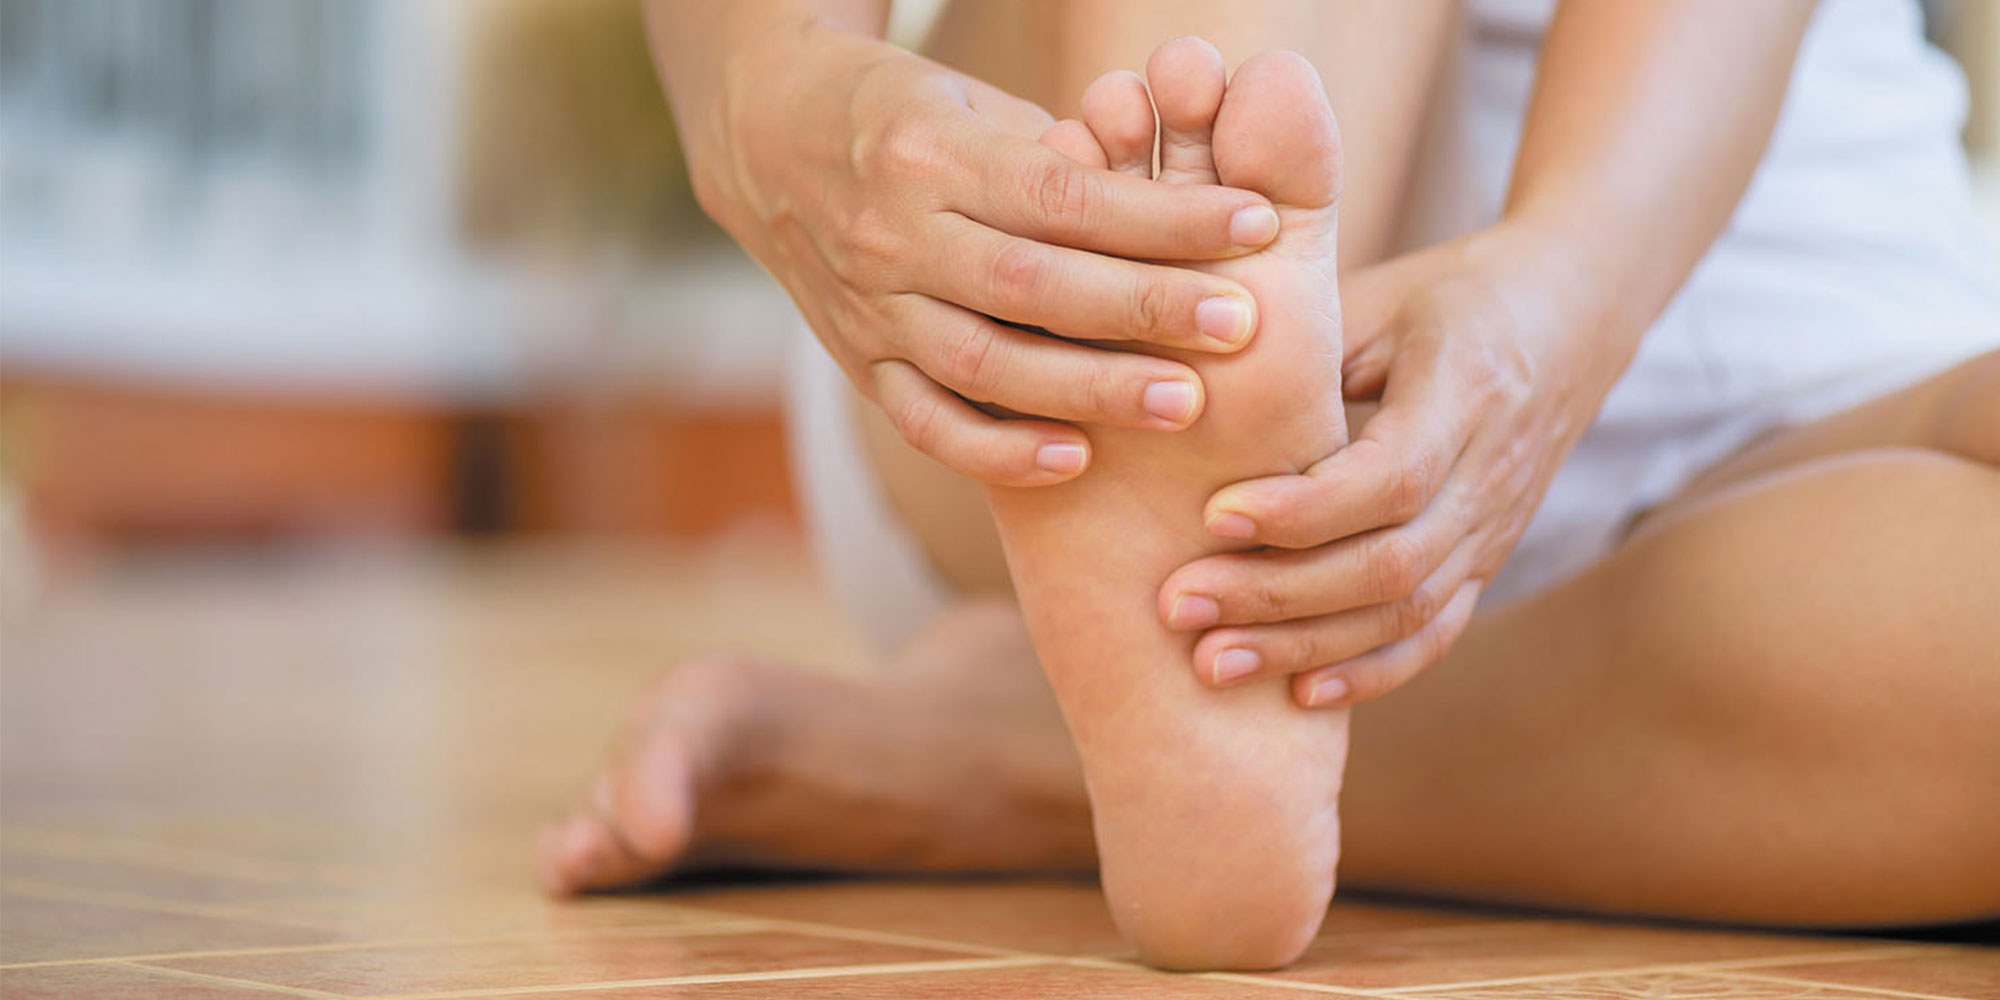 Spray This 3-Ingredient Oil On Your Feet 10 Minutes Before Bed And You'll Be Dozing Off In No Time!